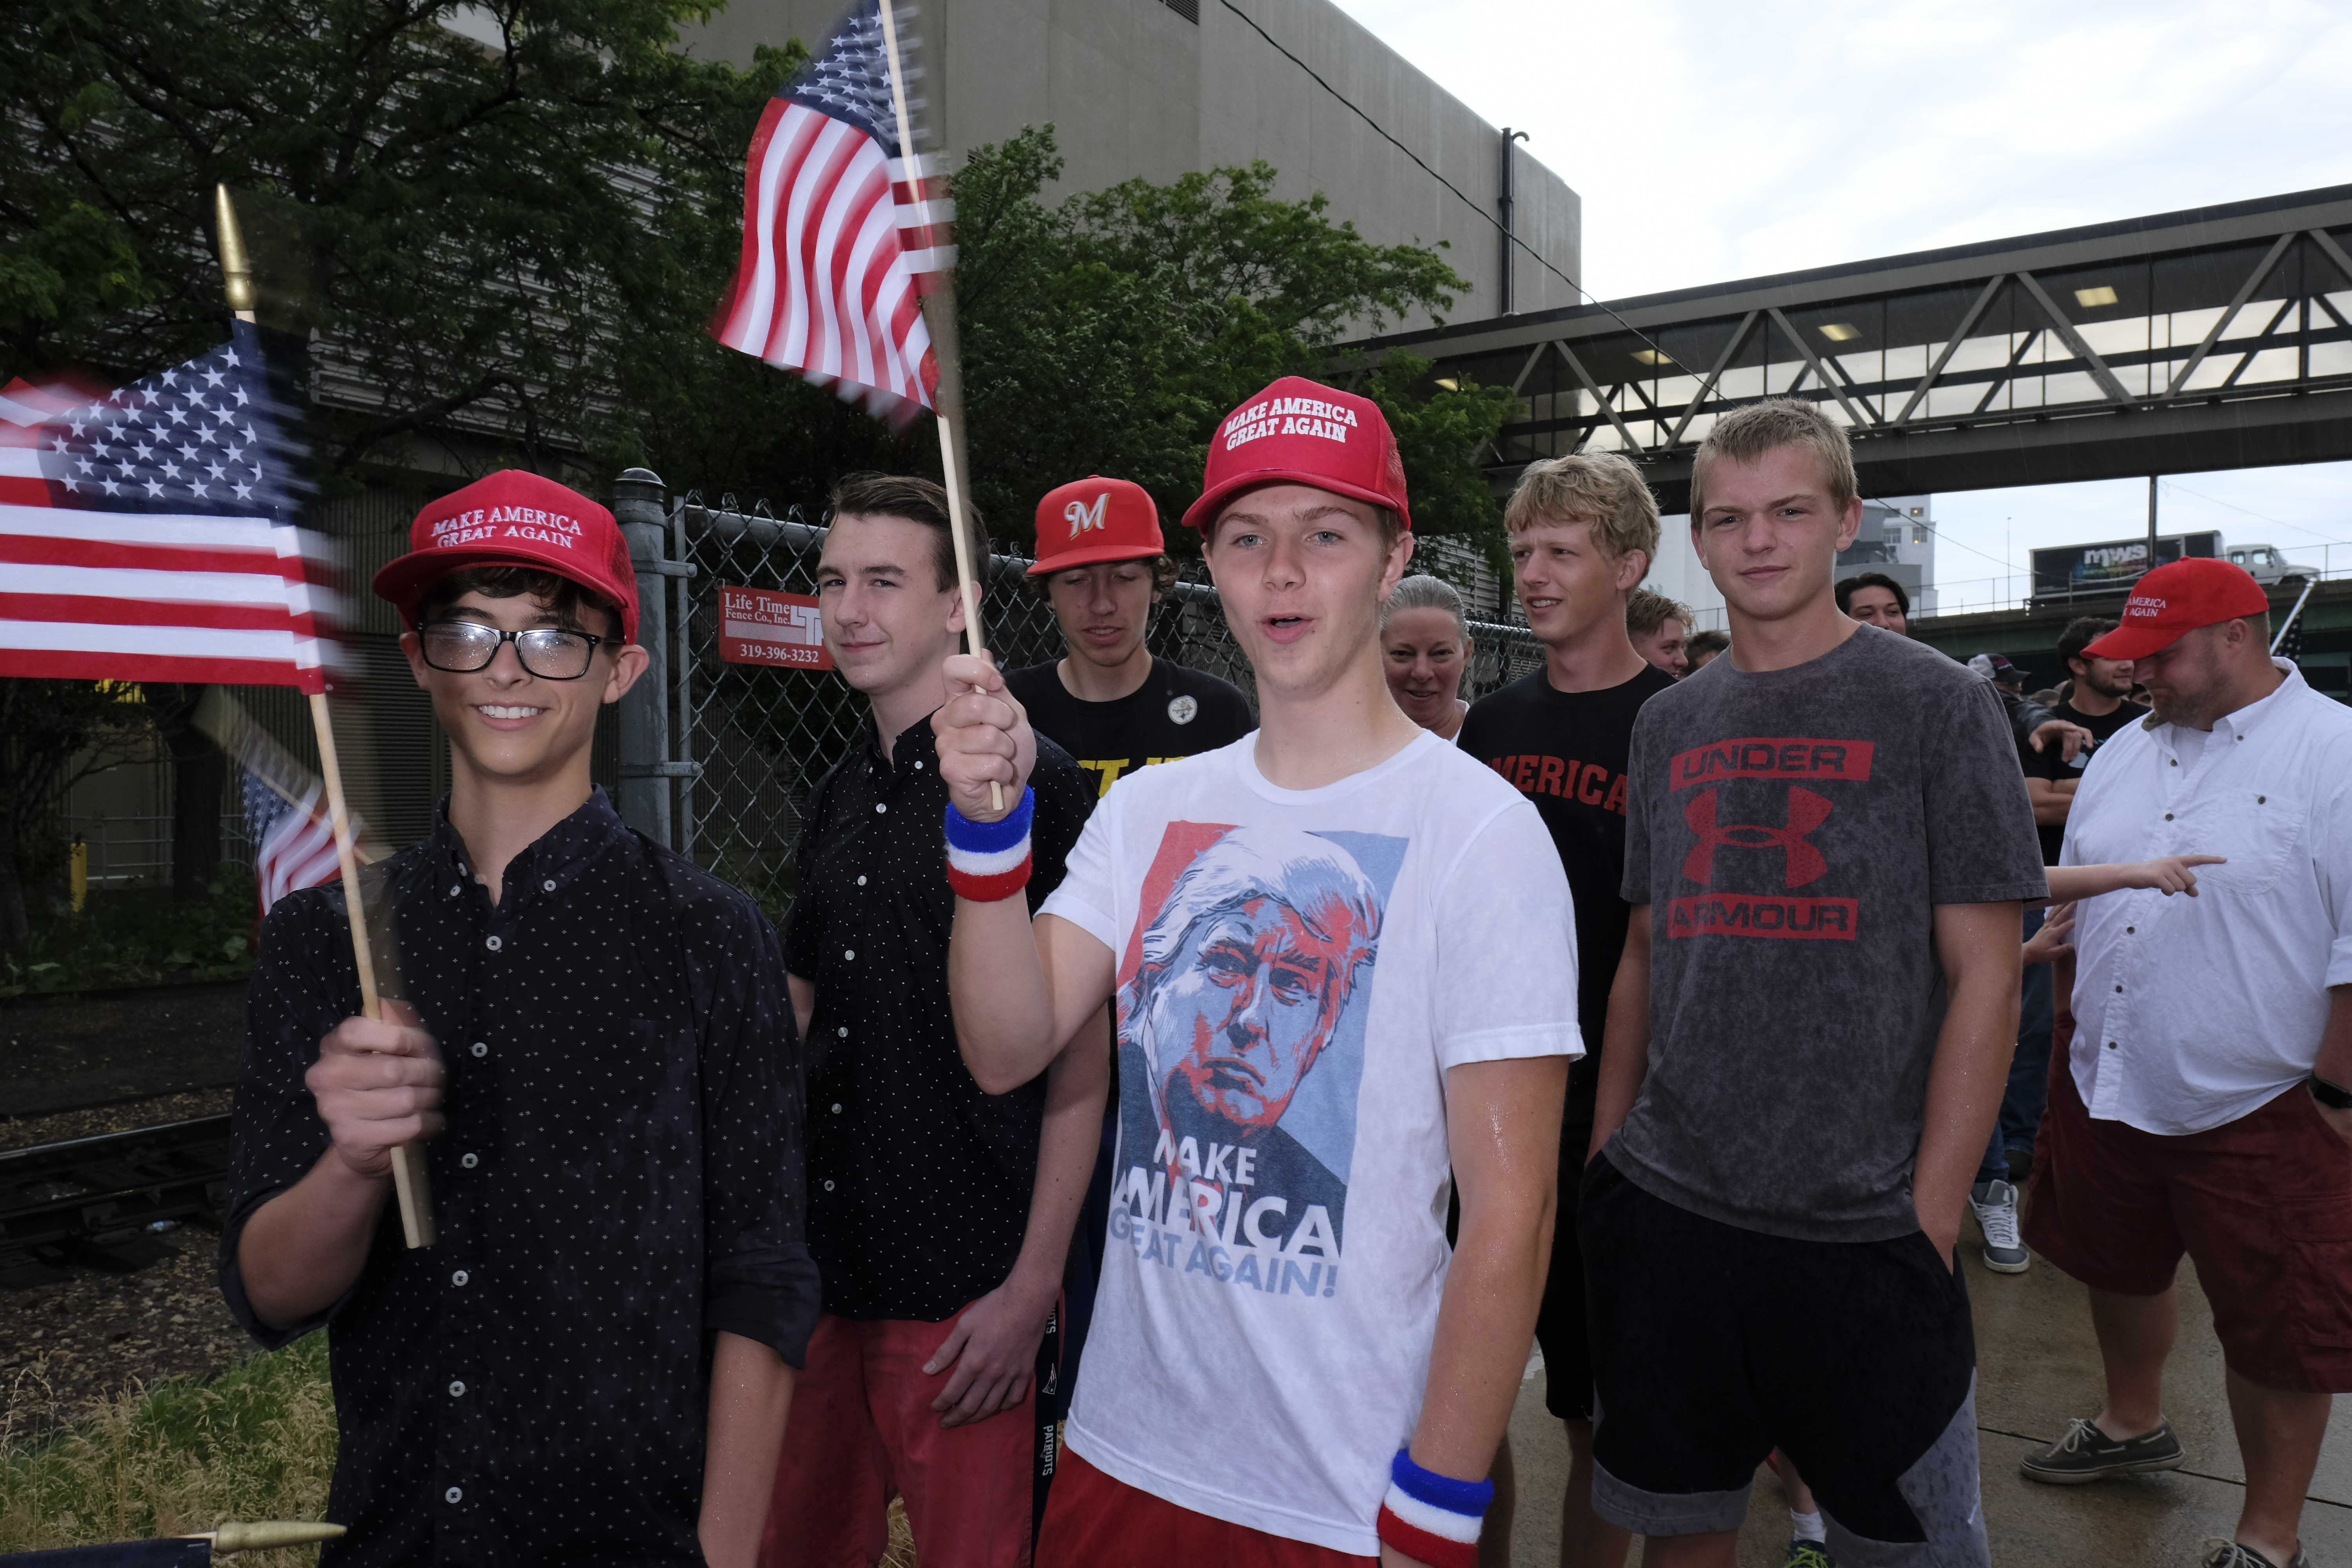 Trump supporters wait in line outside of a Donald Trump rally in Cedar Rapids on Wednesday June 21, 2017. (Nick Rohlman/The Daily Iowan)